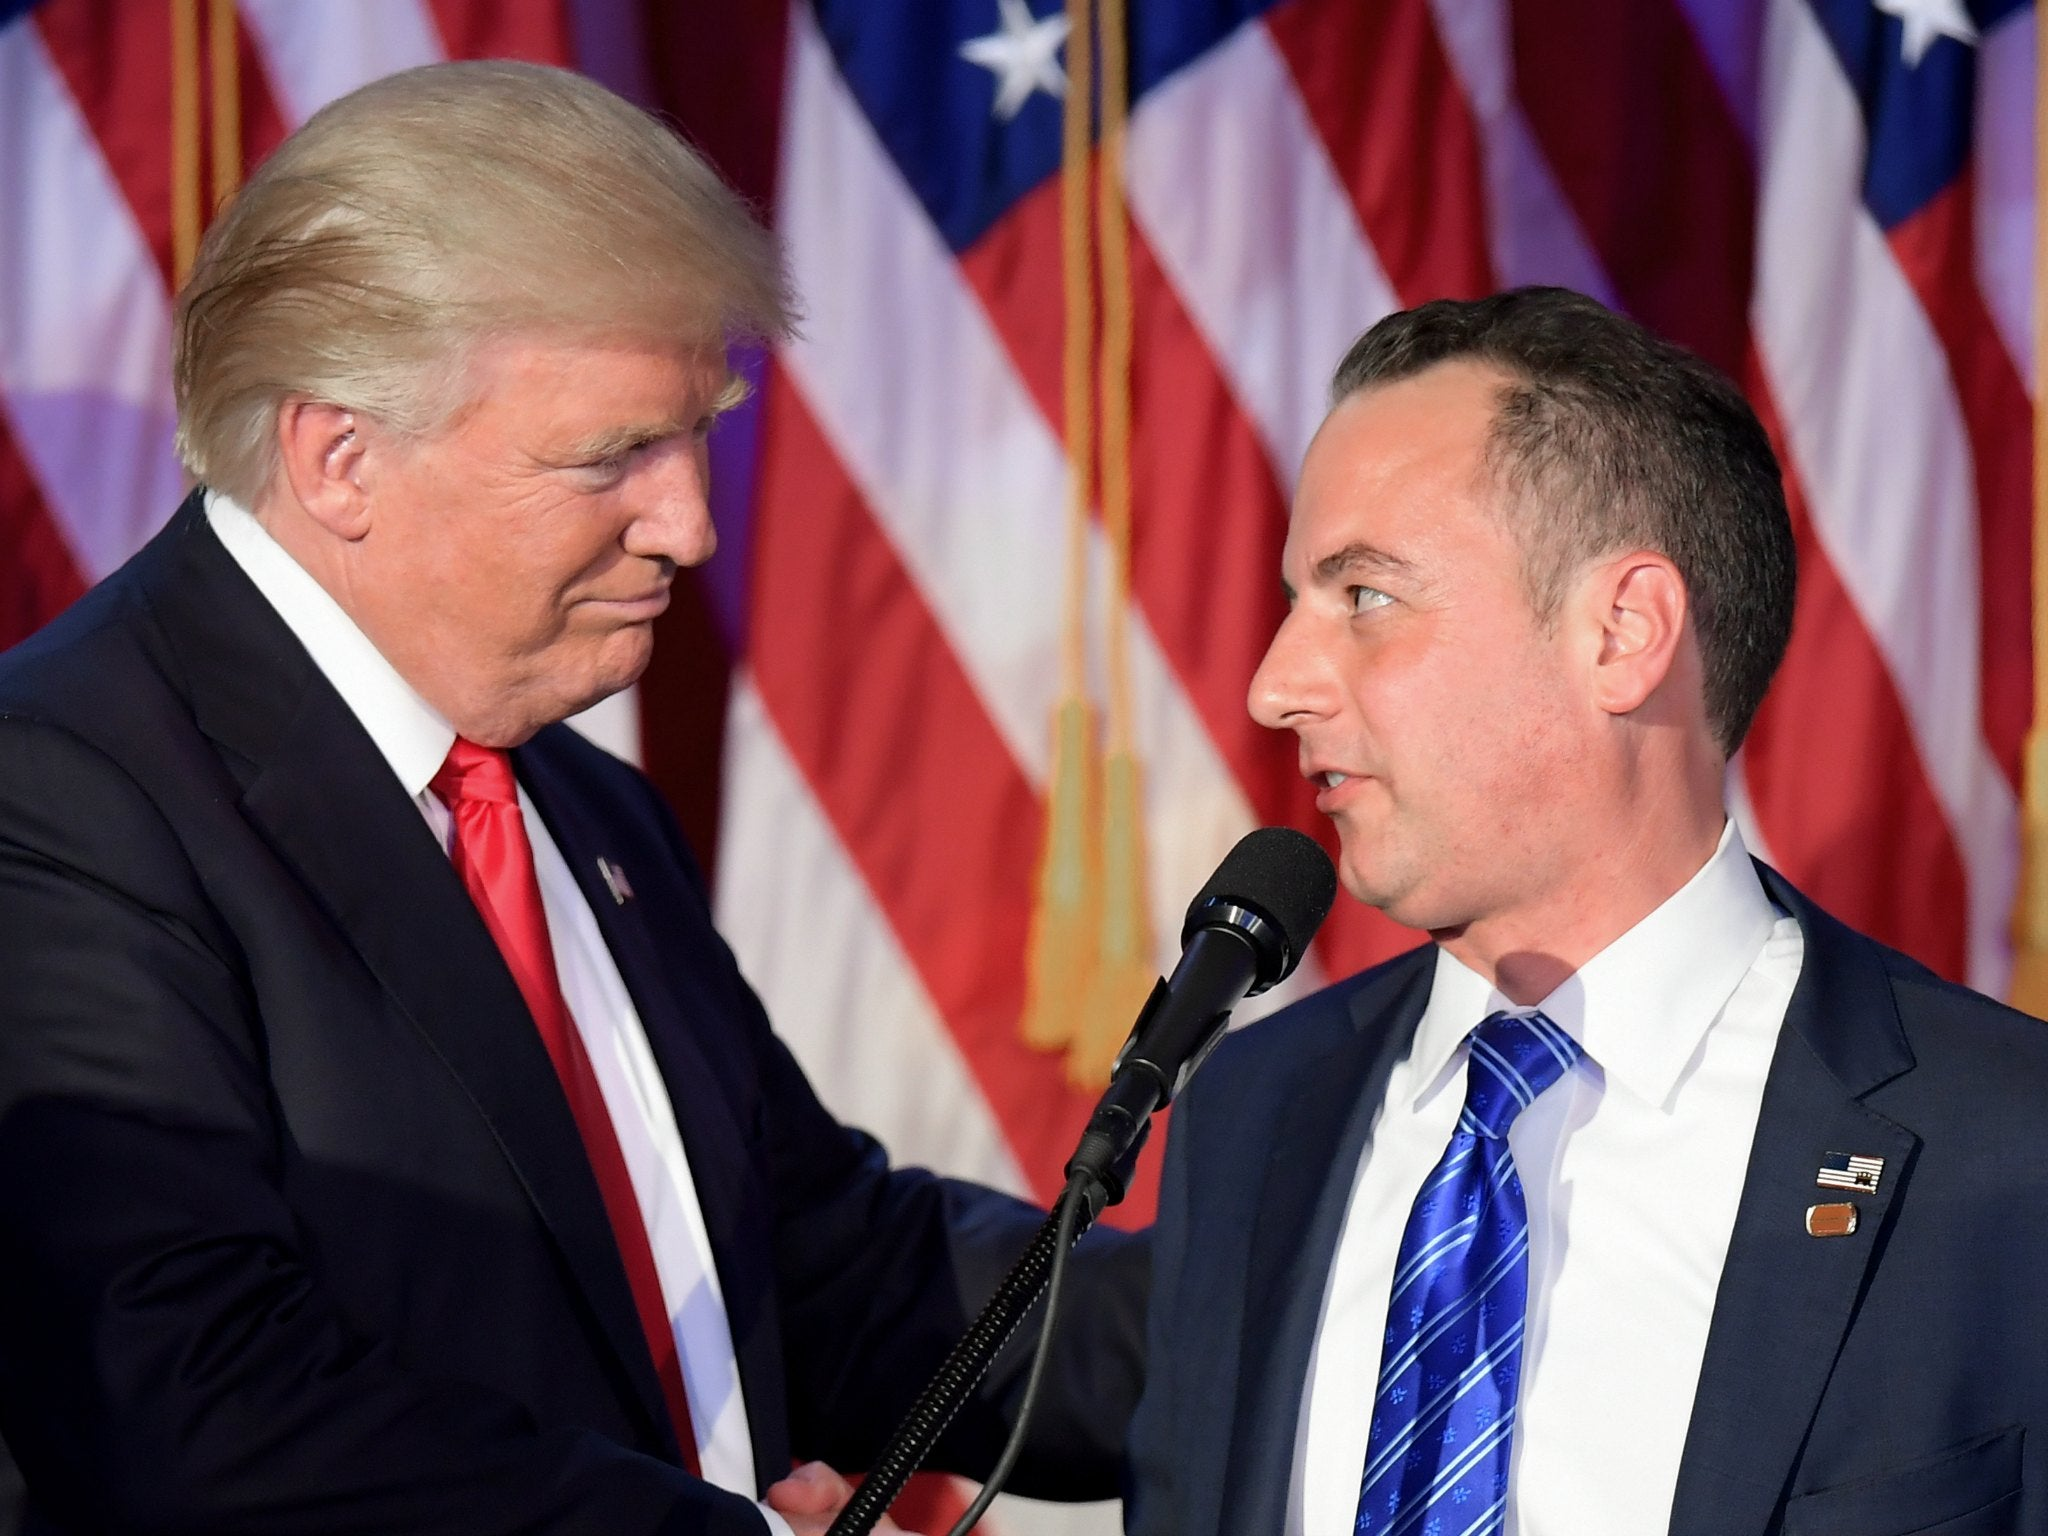 Trump's fired chief of staff Reince Preibus 'to be interviewed by Robert Mueller' as part of Russia investigation